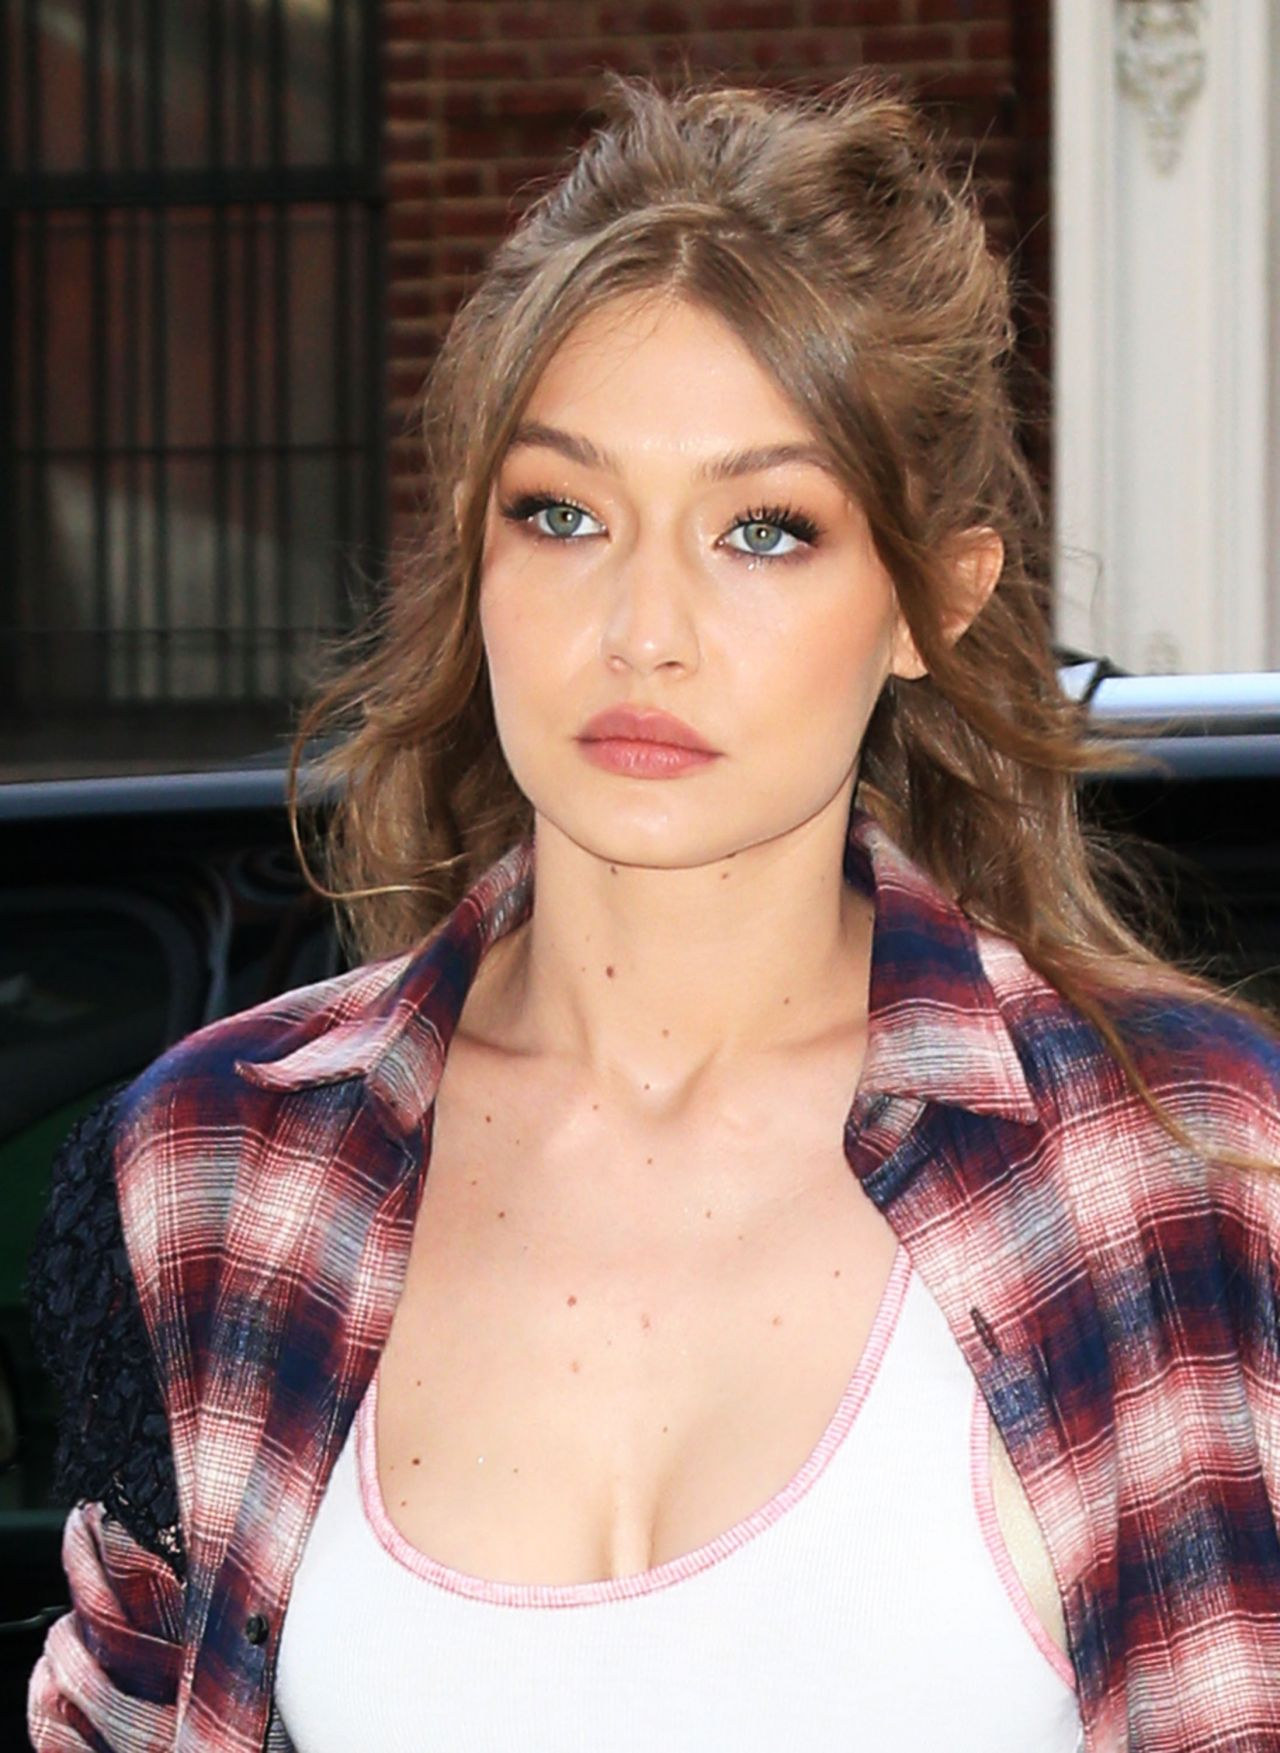 Gigi Hadid Leaving Her Home In Nyc 4 11 2017